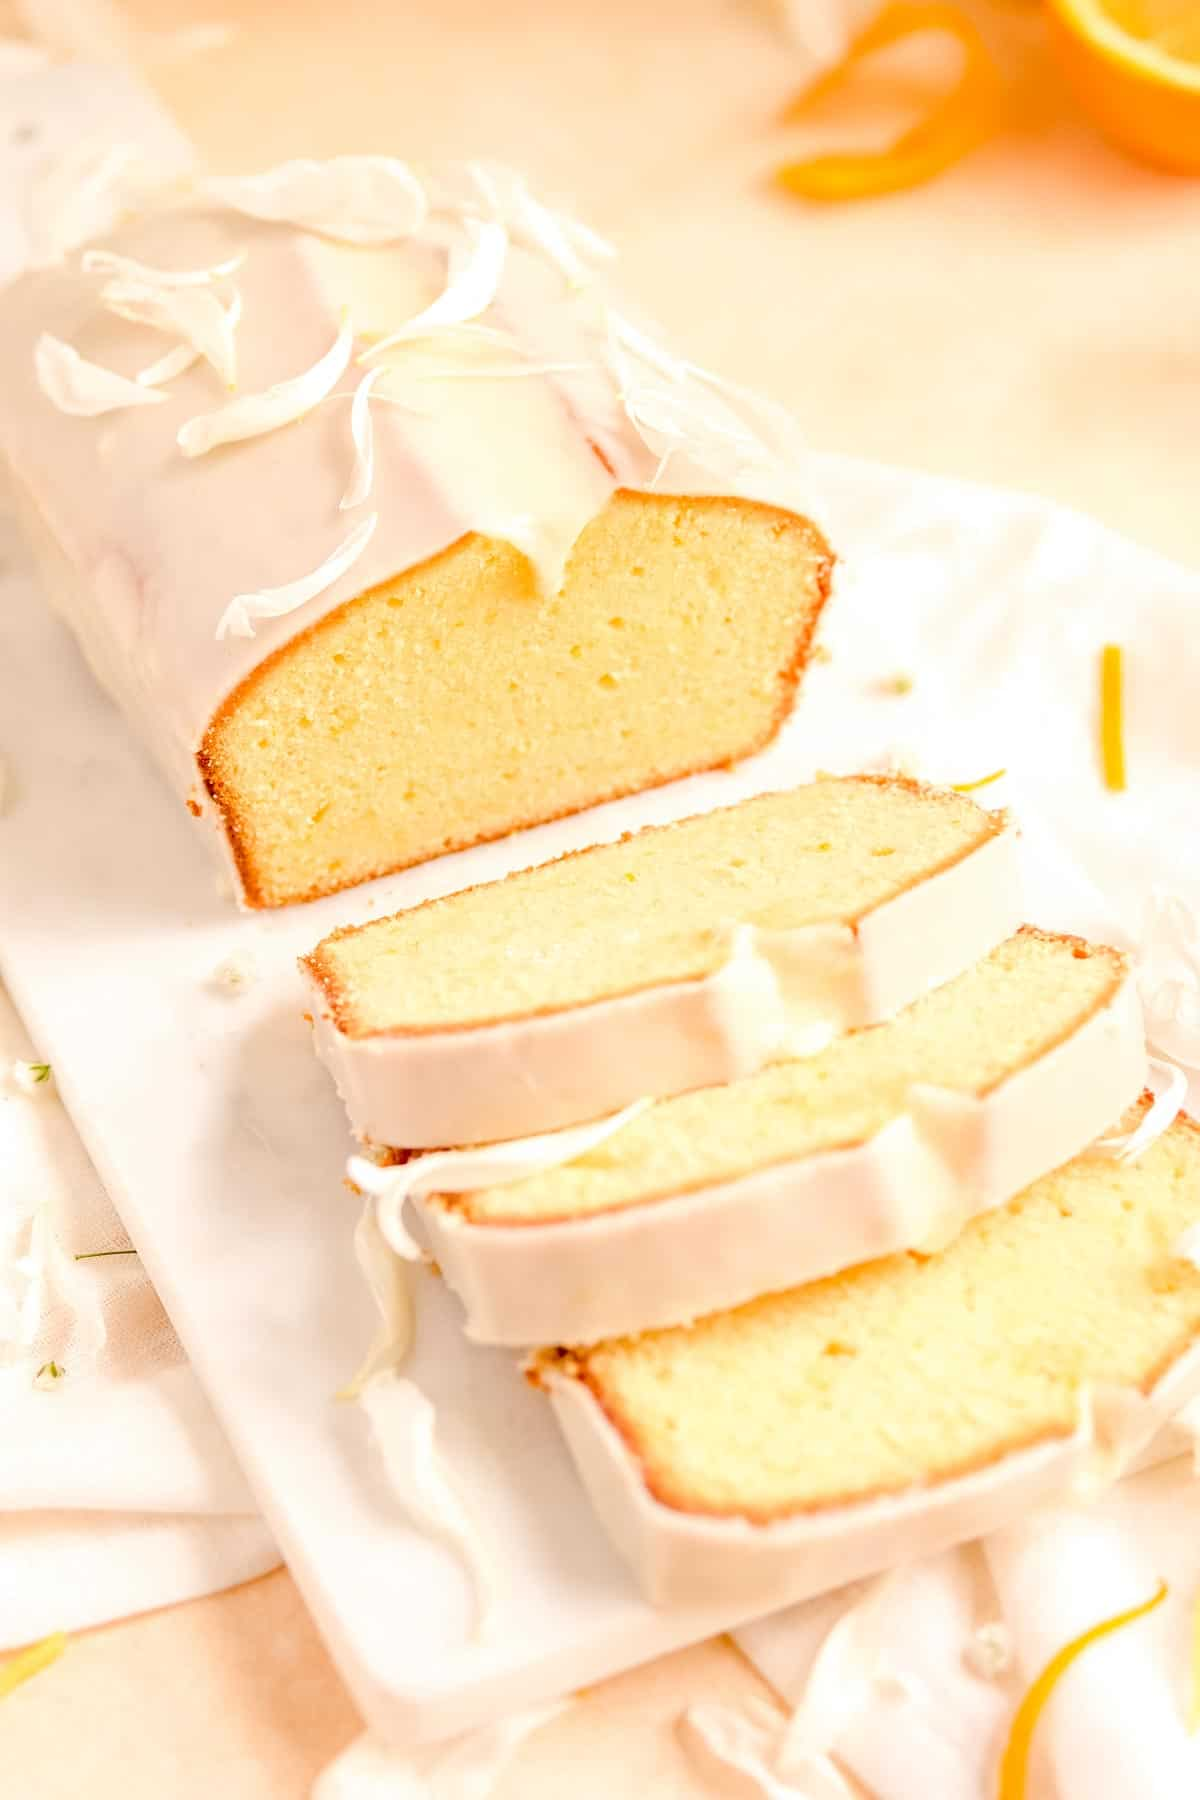 a partially sliced, glazed citrus cream cheese pound cake from a 45 degree angle and oranges in the background.